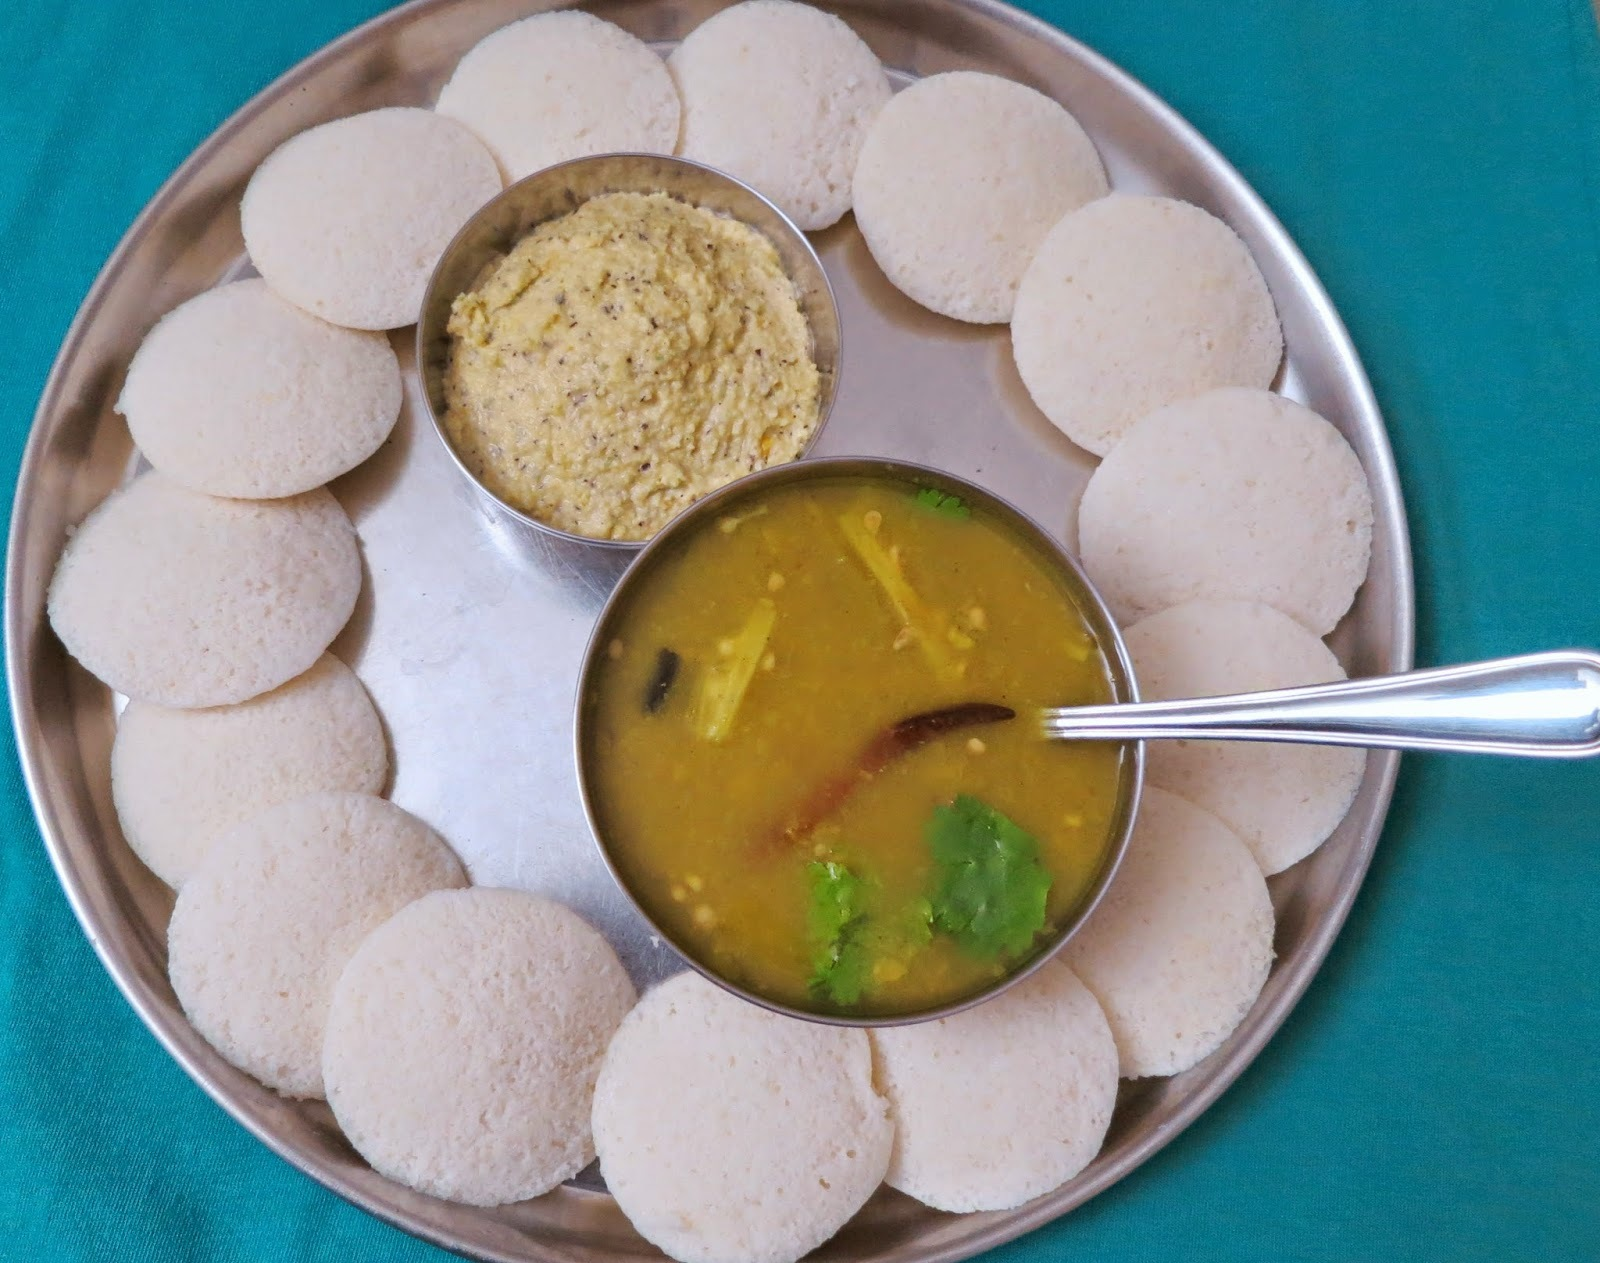 Idlis( South Indian steamed rice and spilt black gram dumplings)